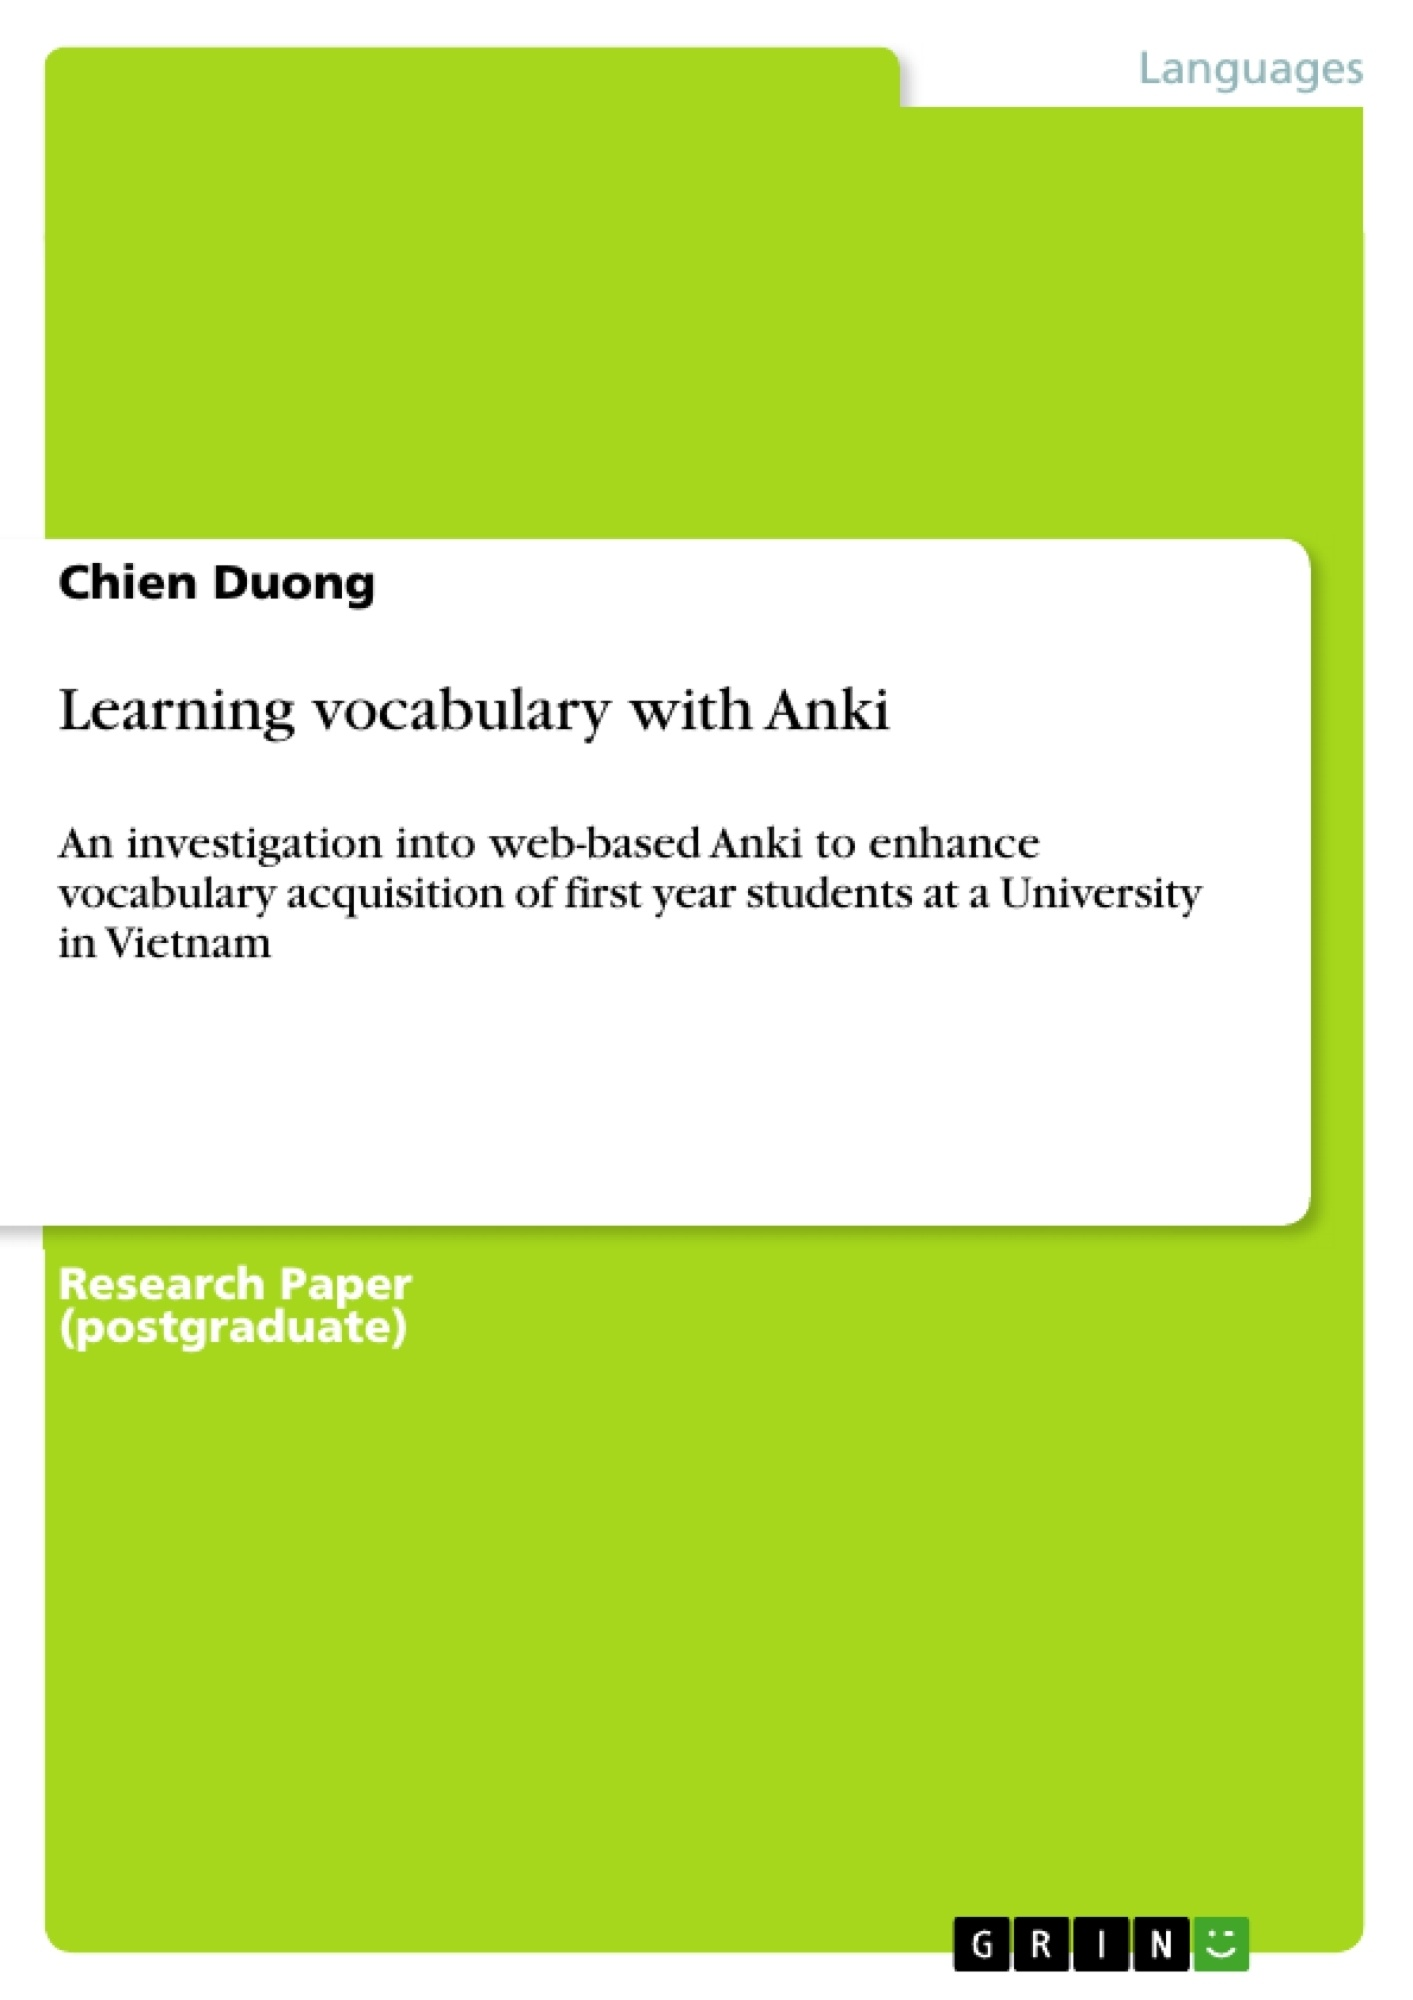 Title: Learning vocabulary with Anki